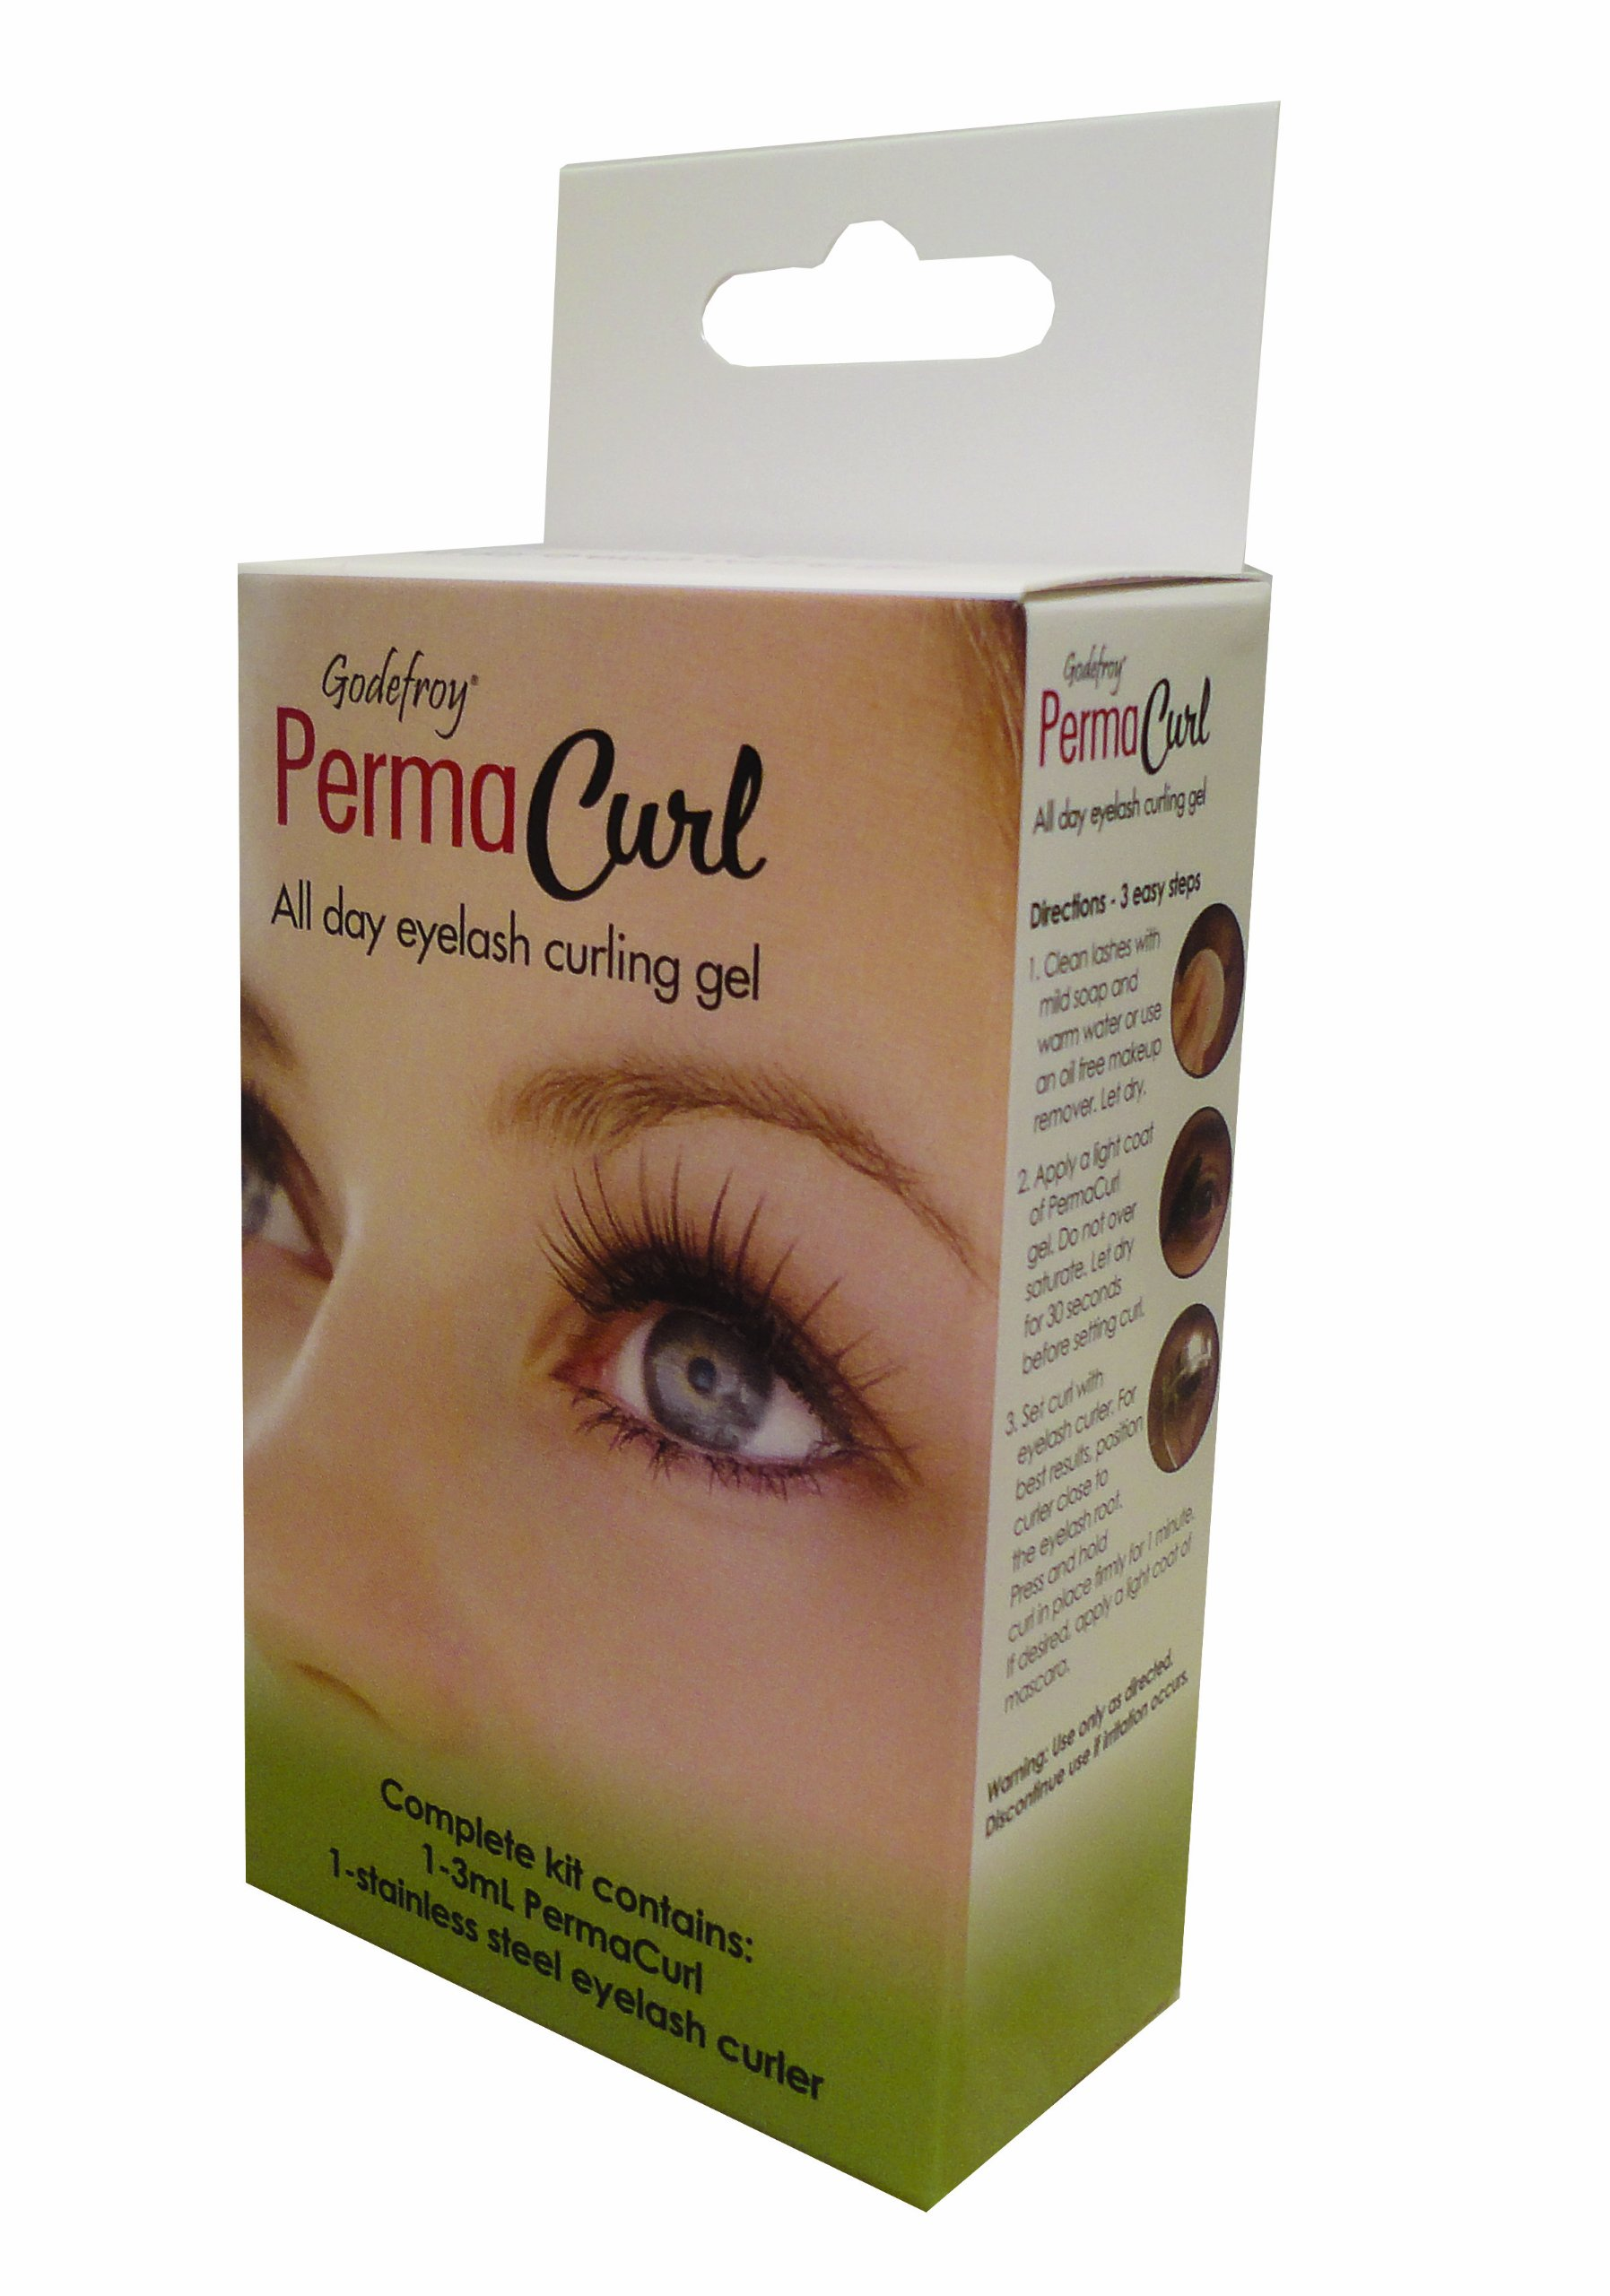 Godefroy 2 Piece Permacurl Kit (All Day Eyelash Curling Gel Plus Stainless Steel Eyelash Curler)